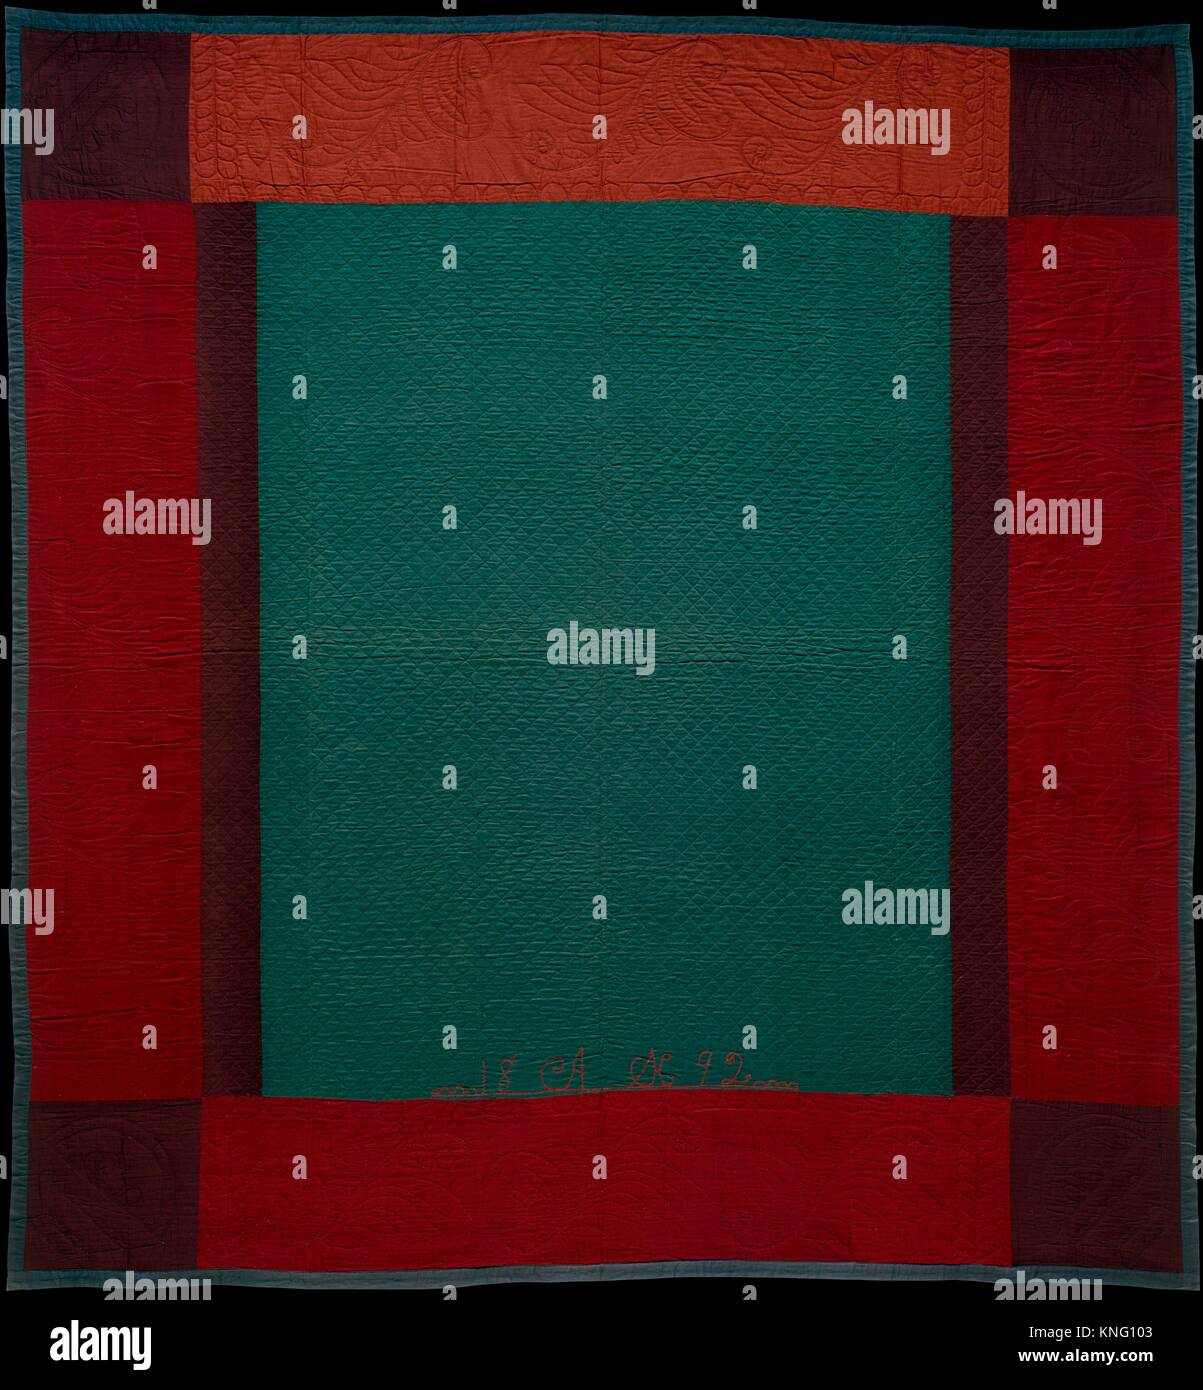 Quilt Center Square And Bars Pattern Maker Amish Maker Maker A